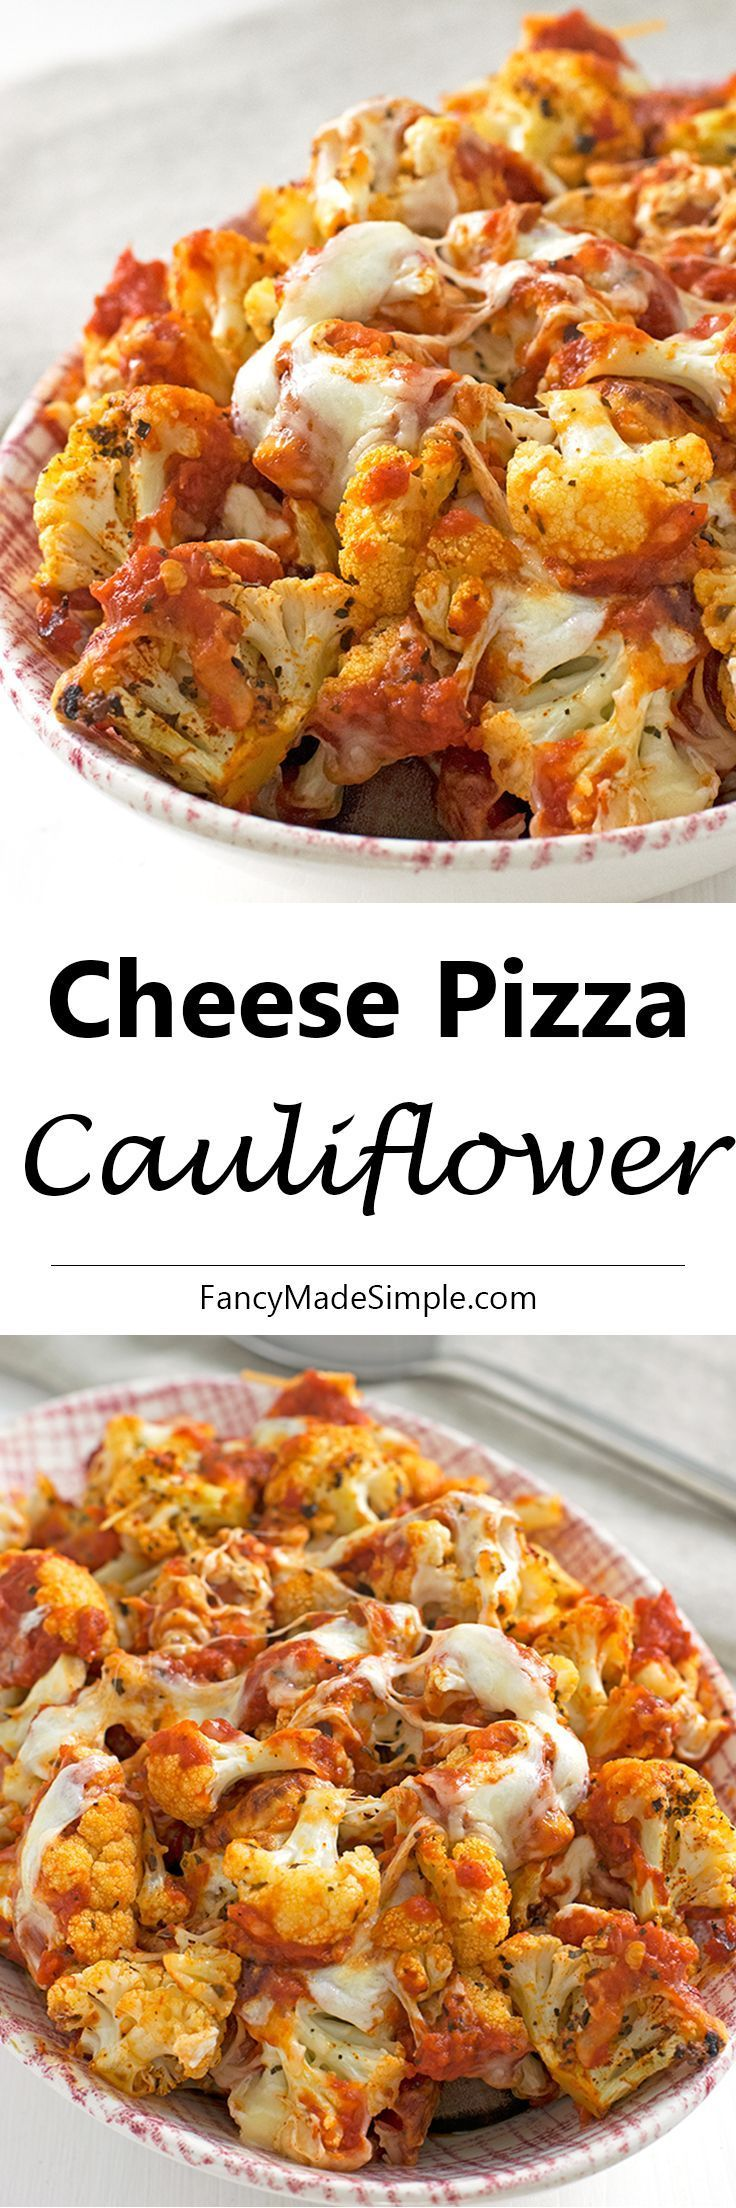 This cheese pizza cauliflower is unbelievably amazing. It's so fast and easy to make. Your family will have this gobbled up before it even hits the table! #cauliflower #pizza #sides #recipes